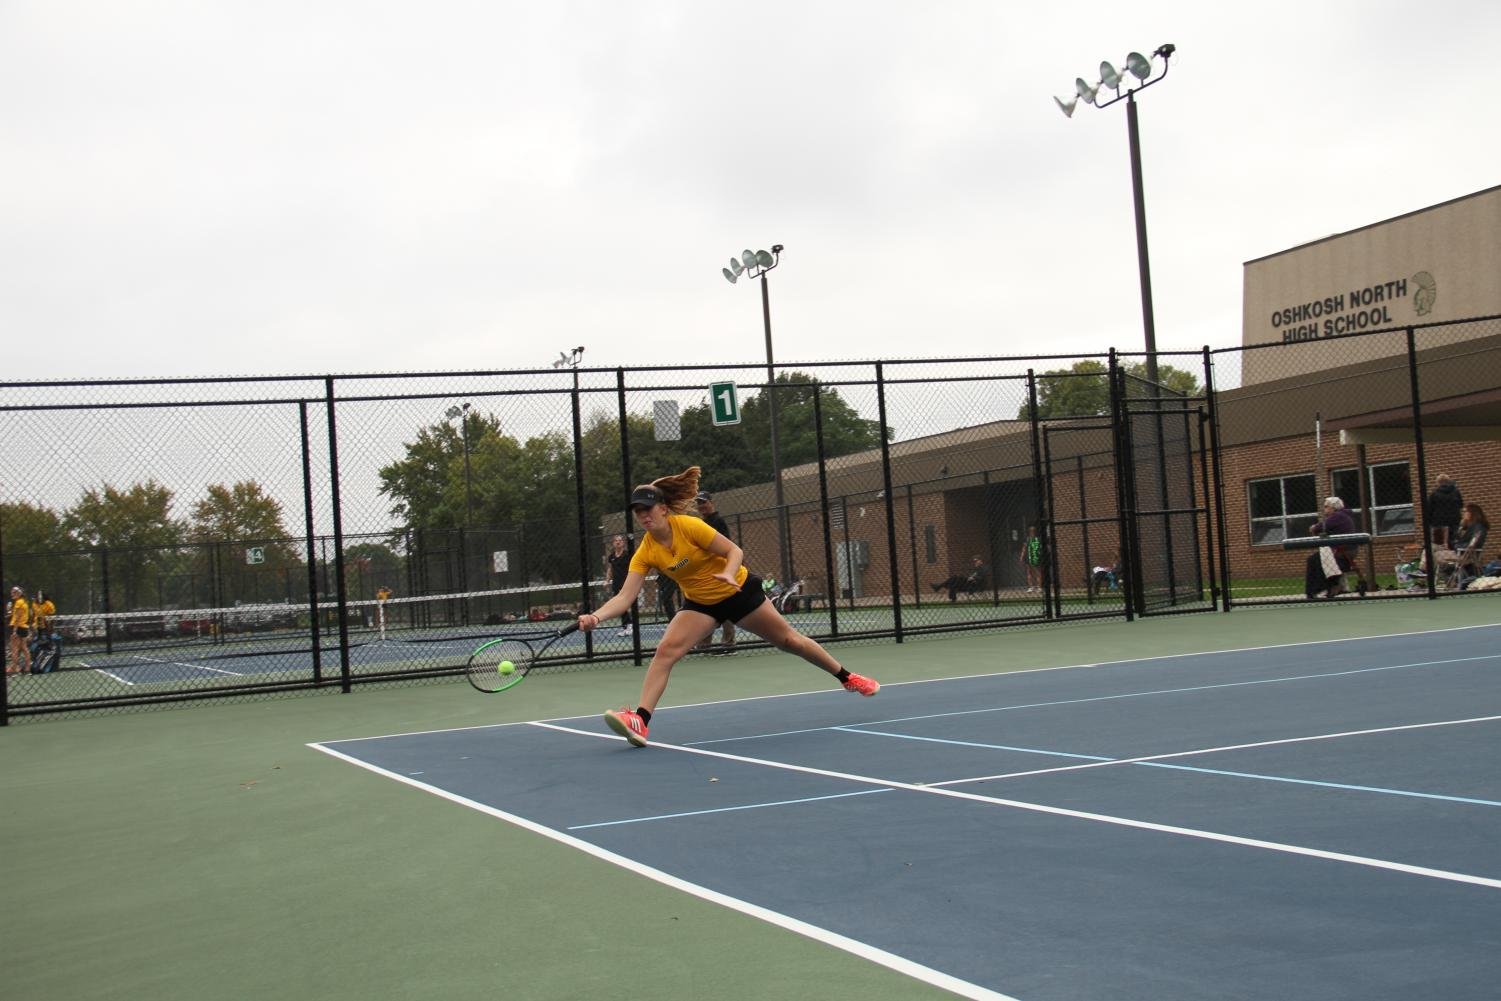 Junior Monica Micoliczyk reaches to return a ball hit by her opponent, UW-Whitewater's Elise Ha, on Tuesday.